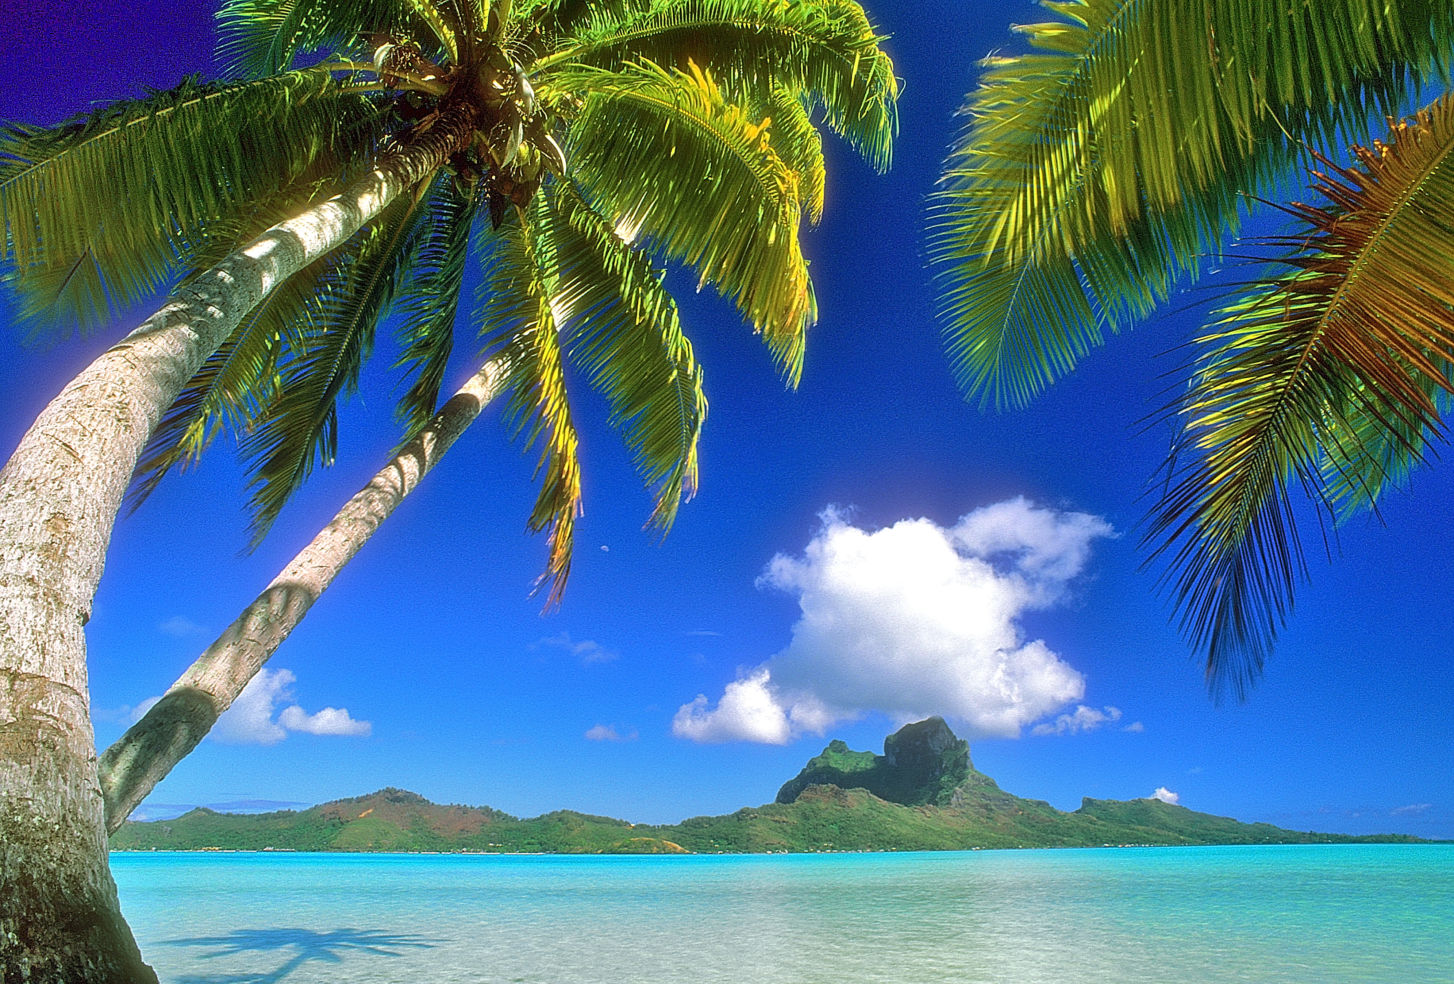 A view of Bora Bora, Tahiti